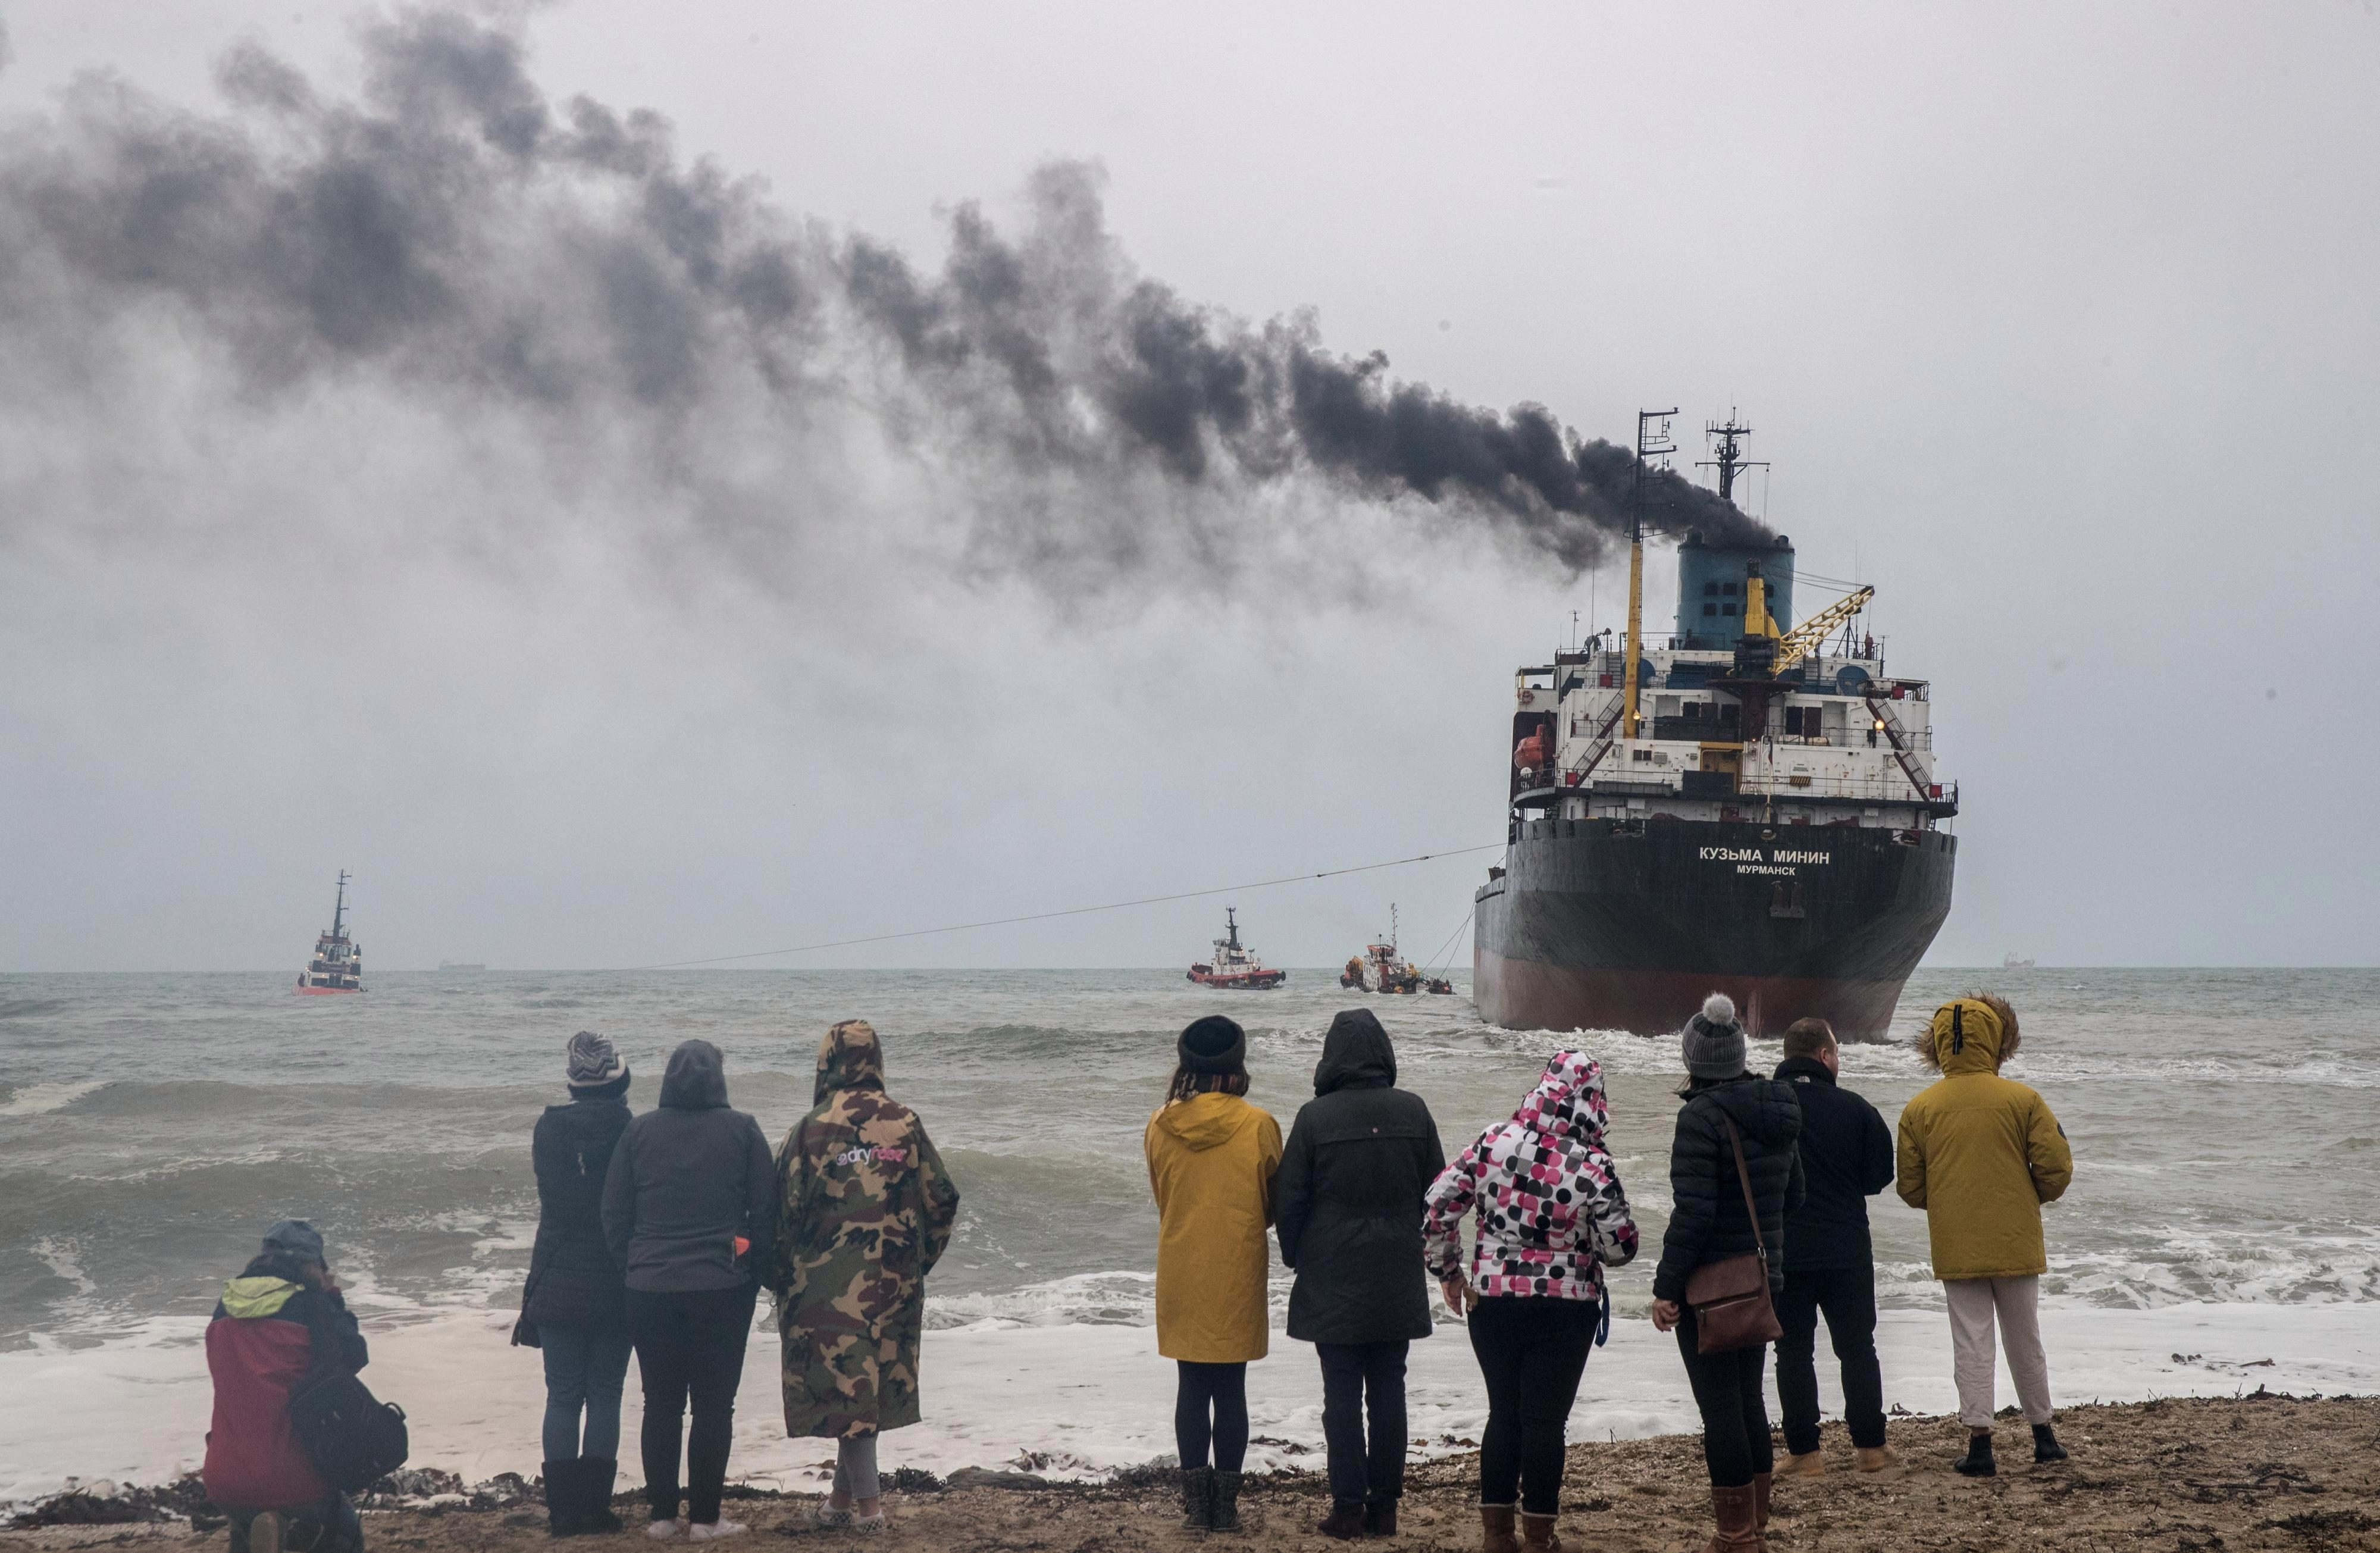 Giant Russia cargo ship is refloated off the Cornwall coast after owner blamed UK for running aground – despite having 100 FAULTS